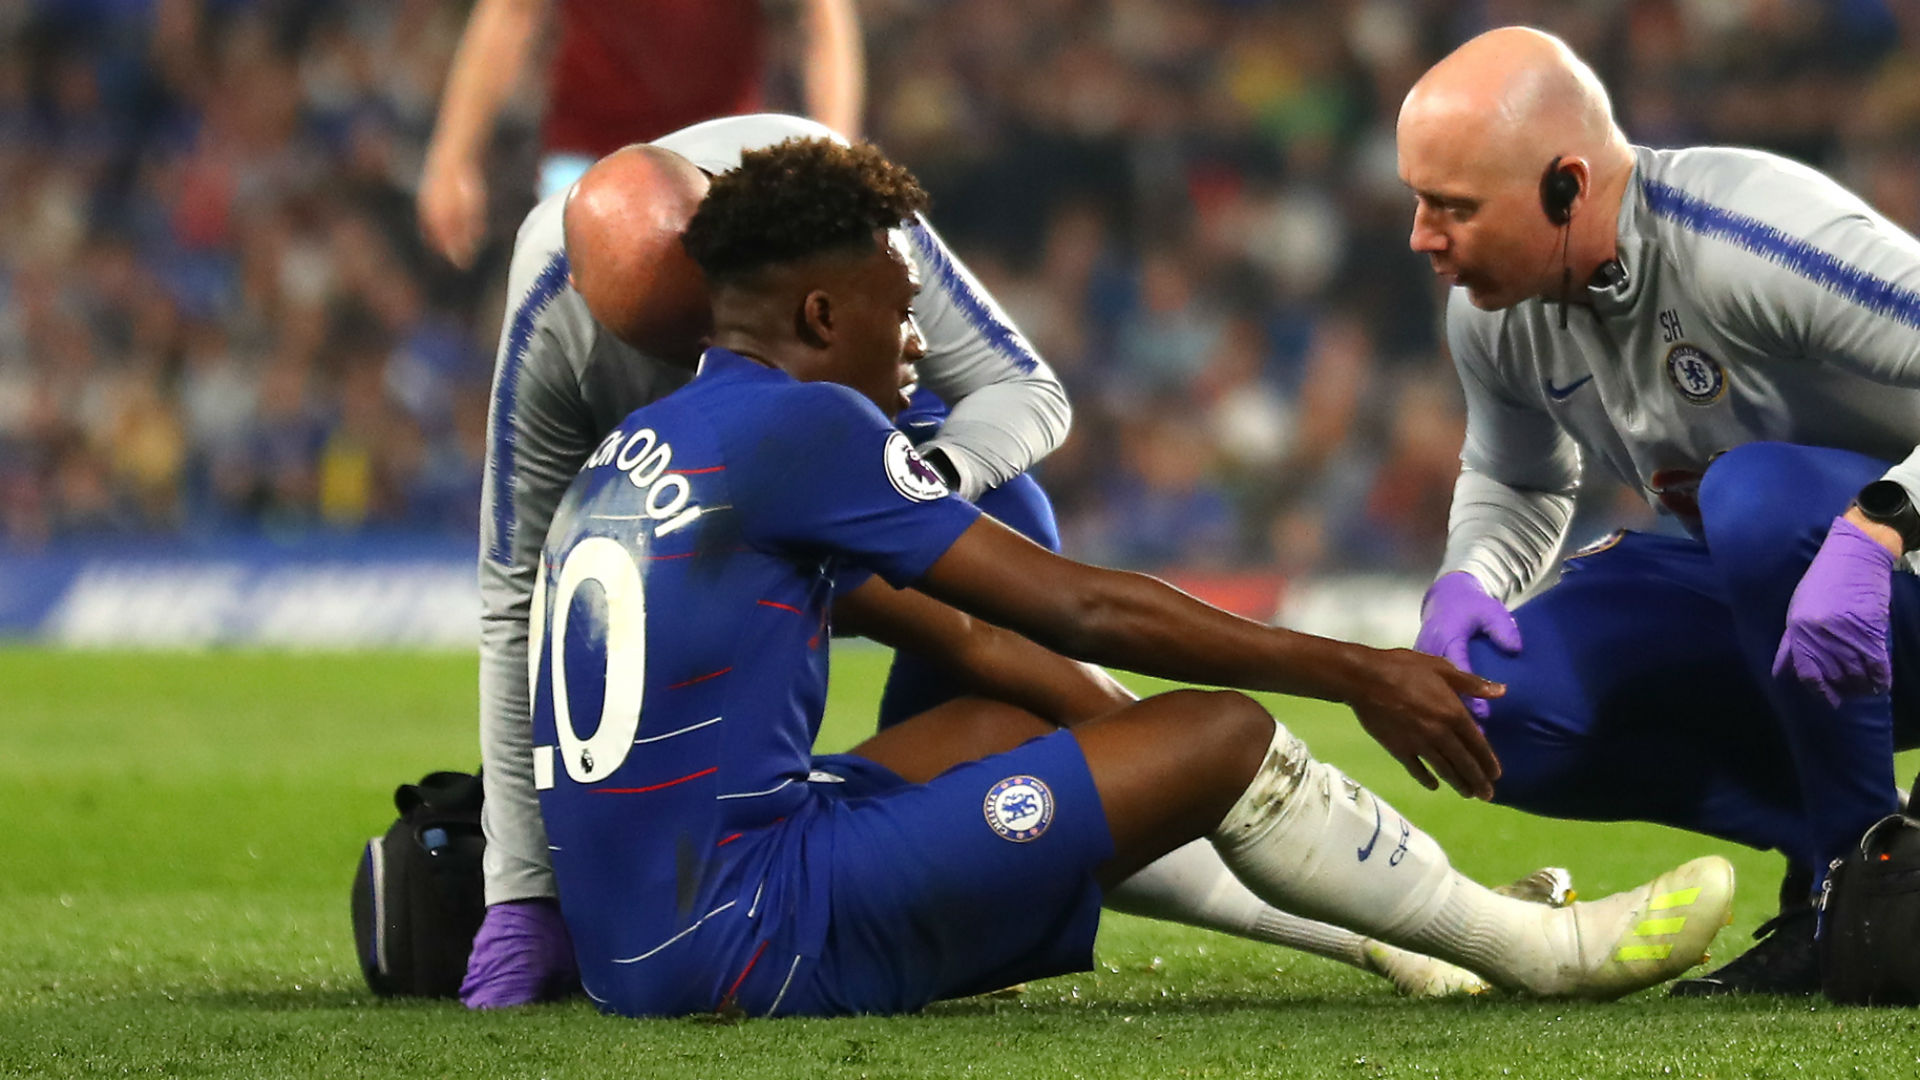 Hudson-Odoi says his season is over with ruptured Achilles tendon